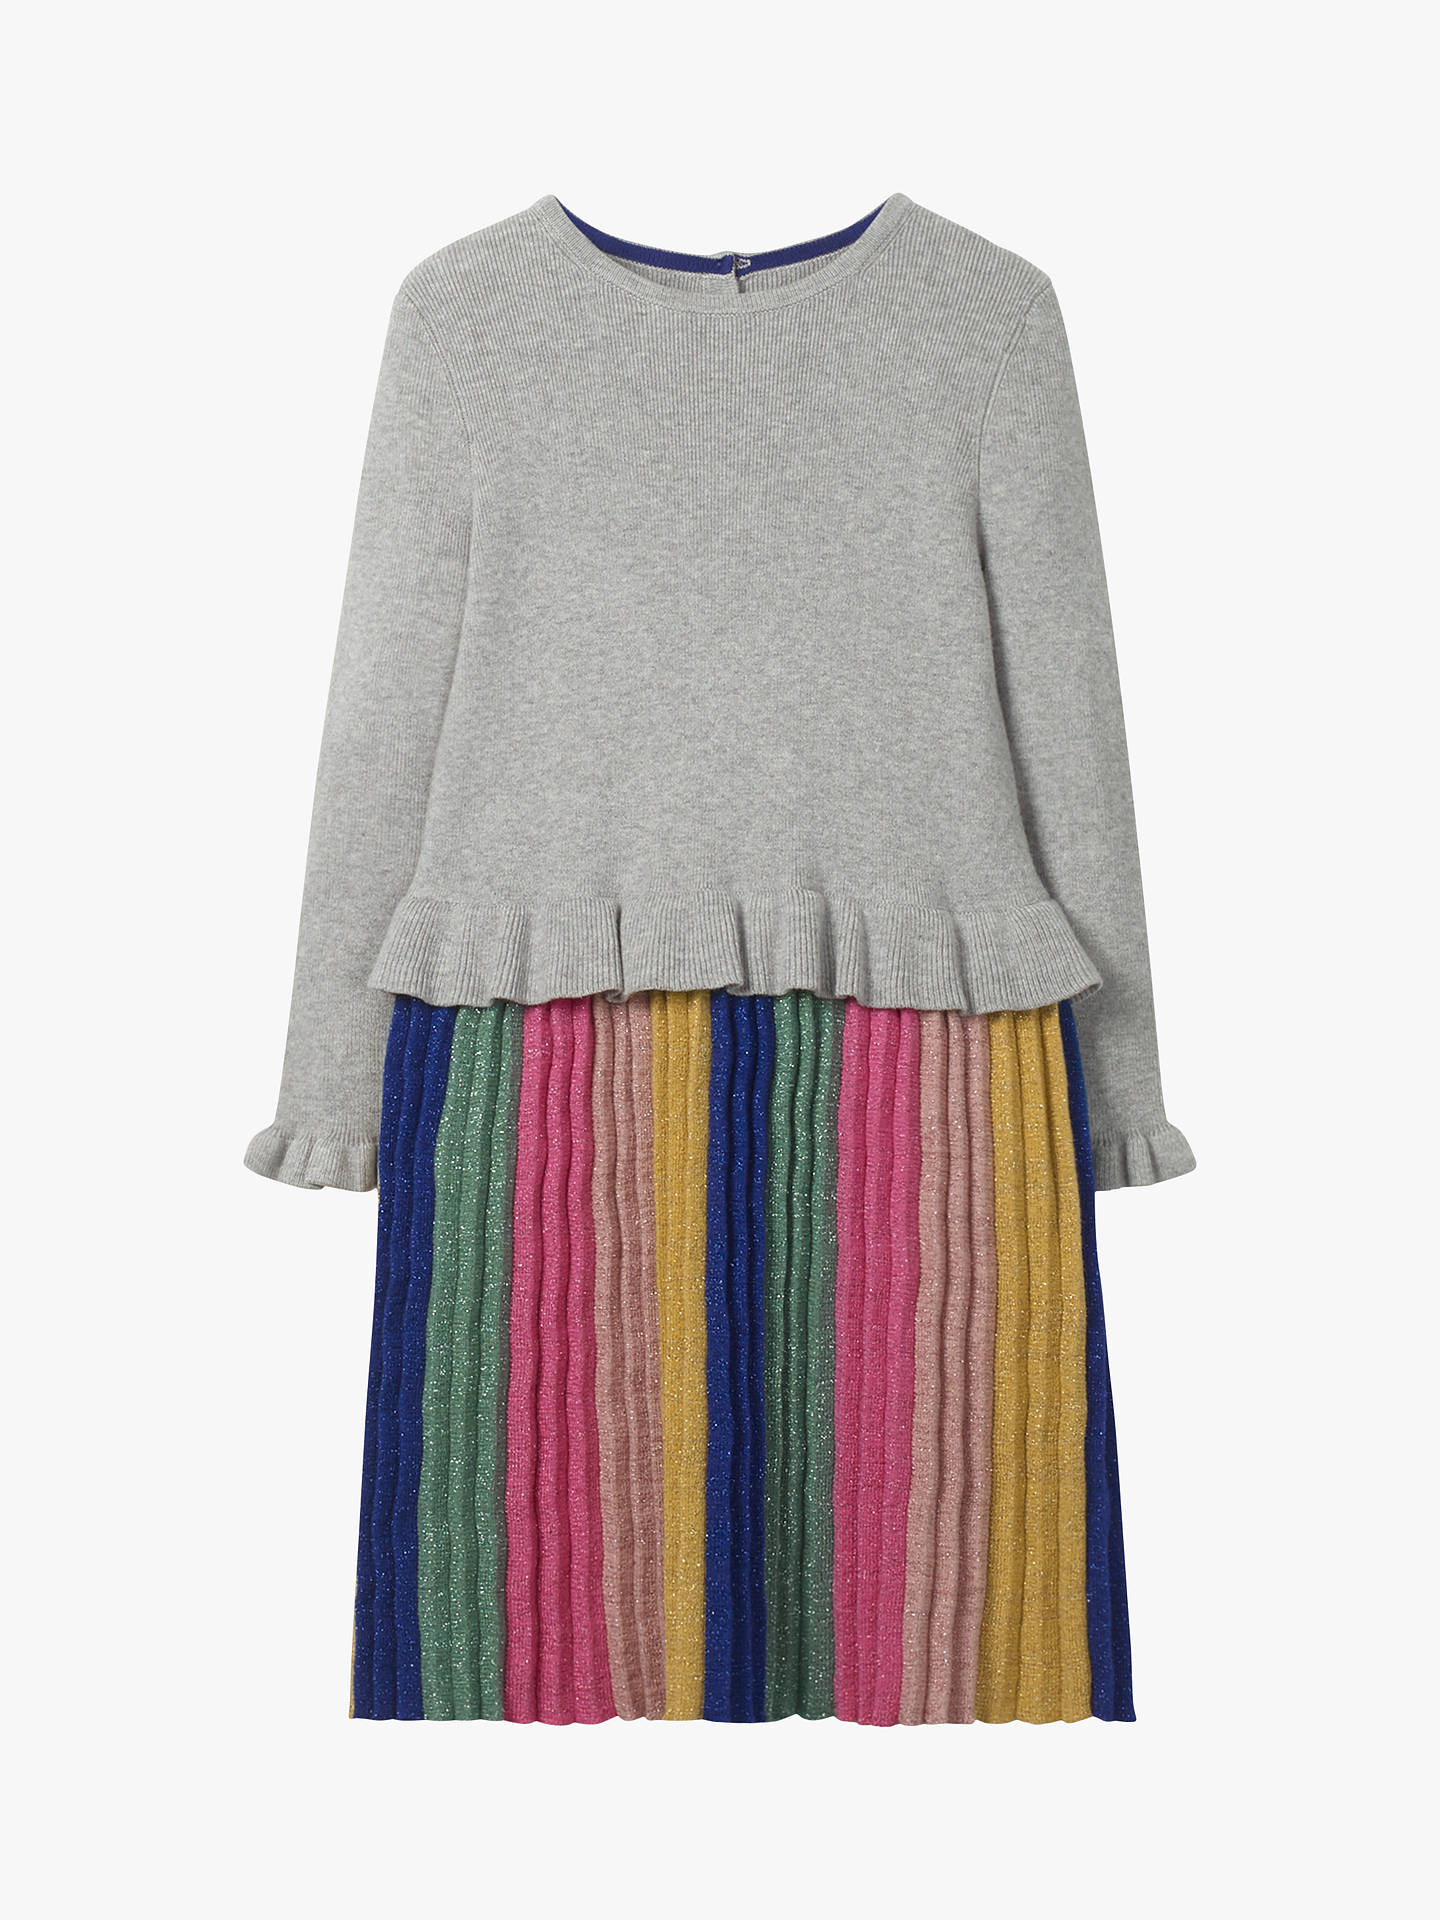 Mini Boden Girls' Sparkly Knitted Party Dress, Grey Marl Rainbow by Mini Boden